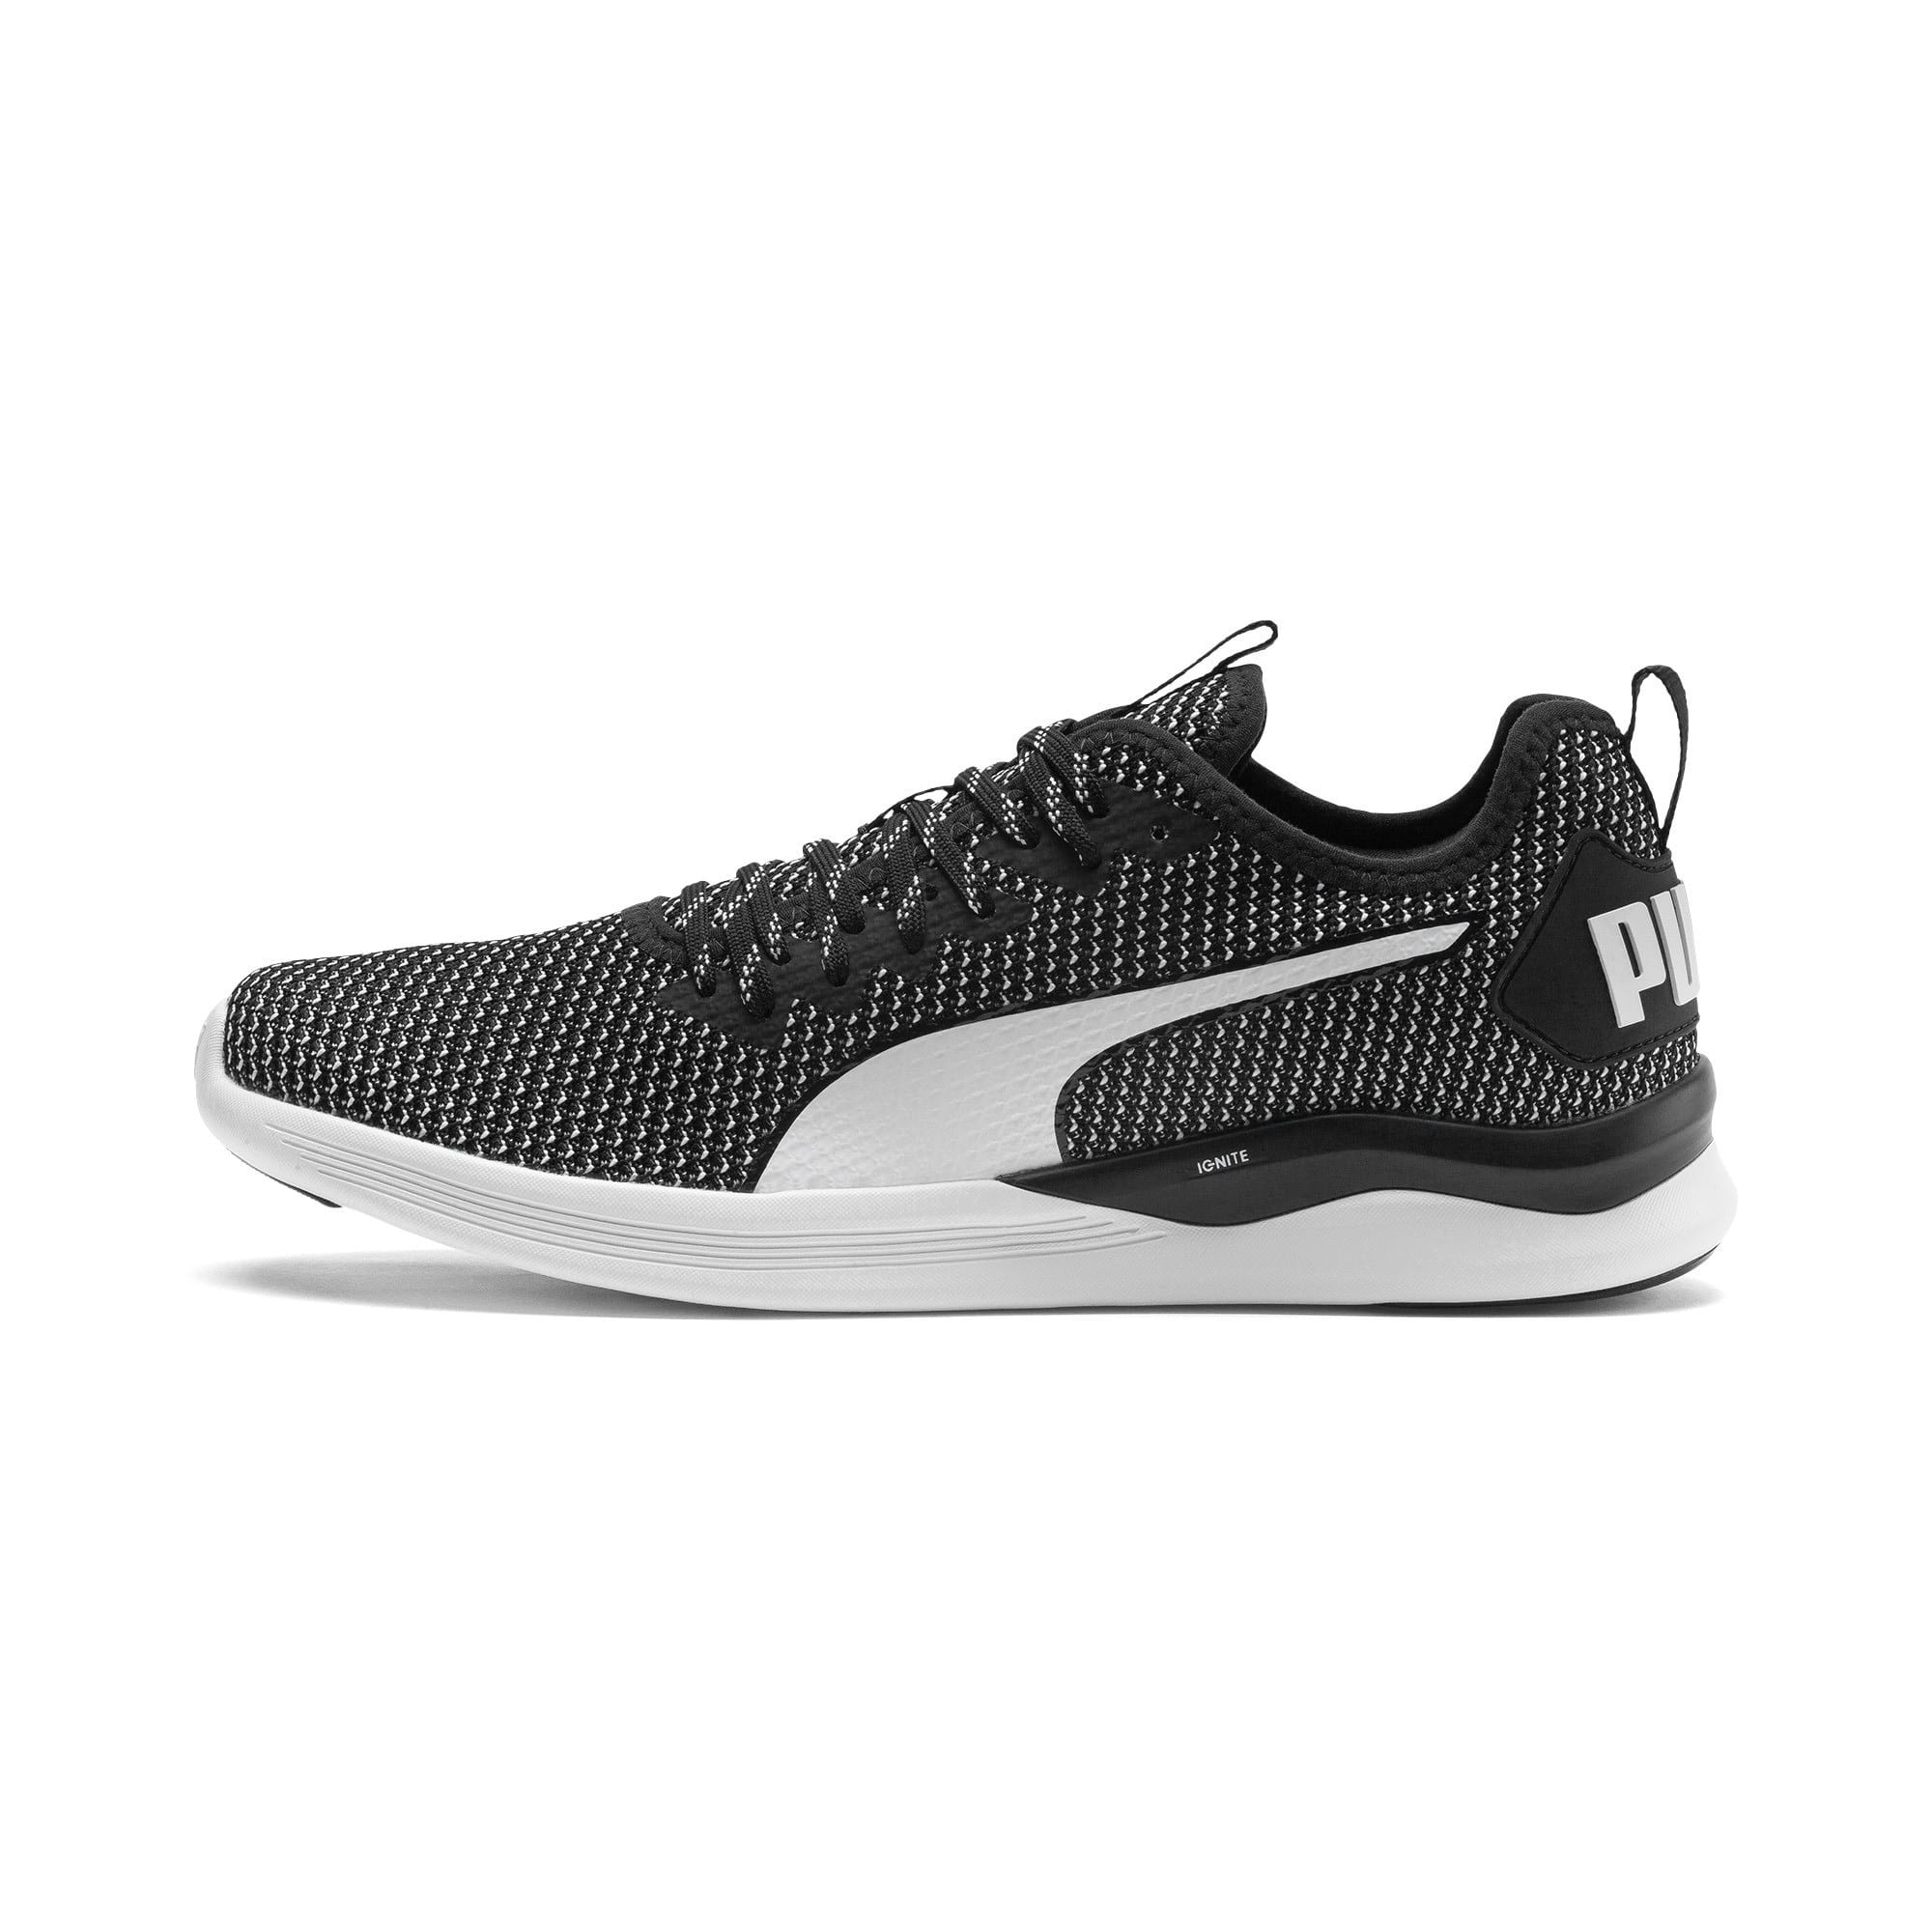 Thumbnail 1 of Chaussure de course IGNITE Flash FS pour homme, Puma Black-Puma White, medium